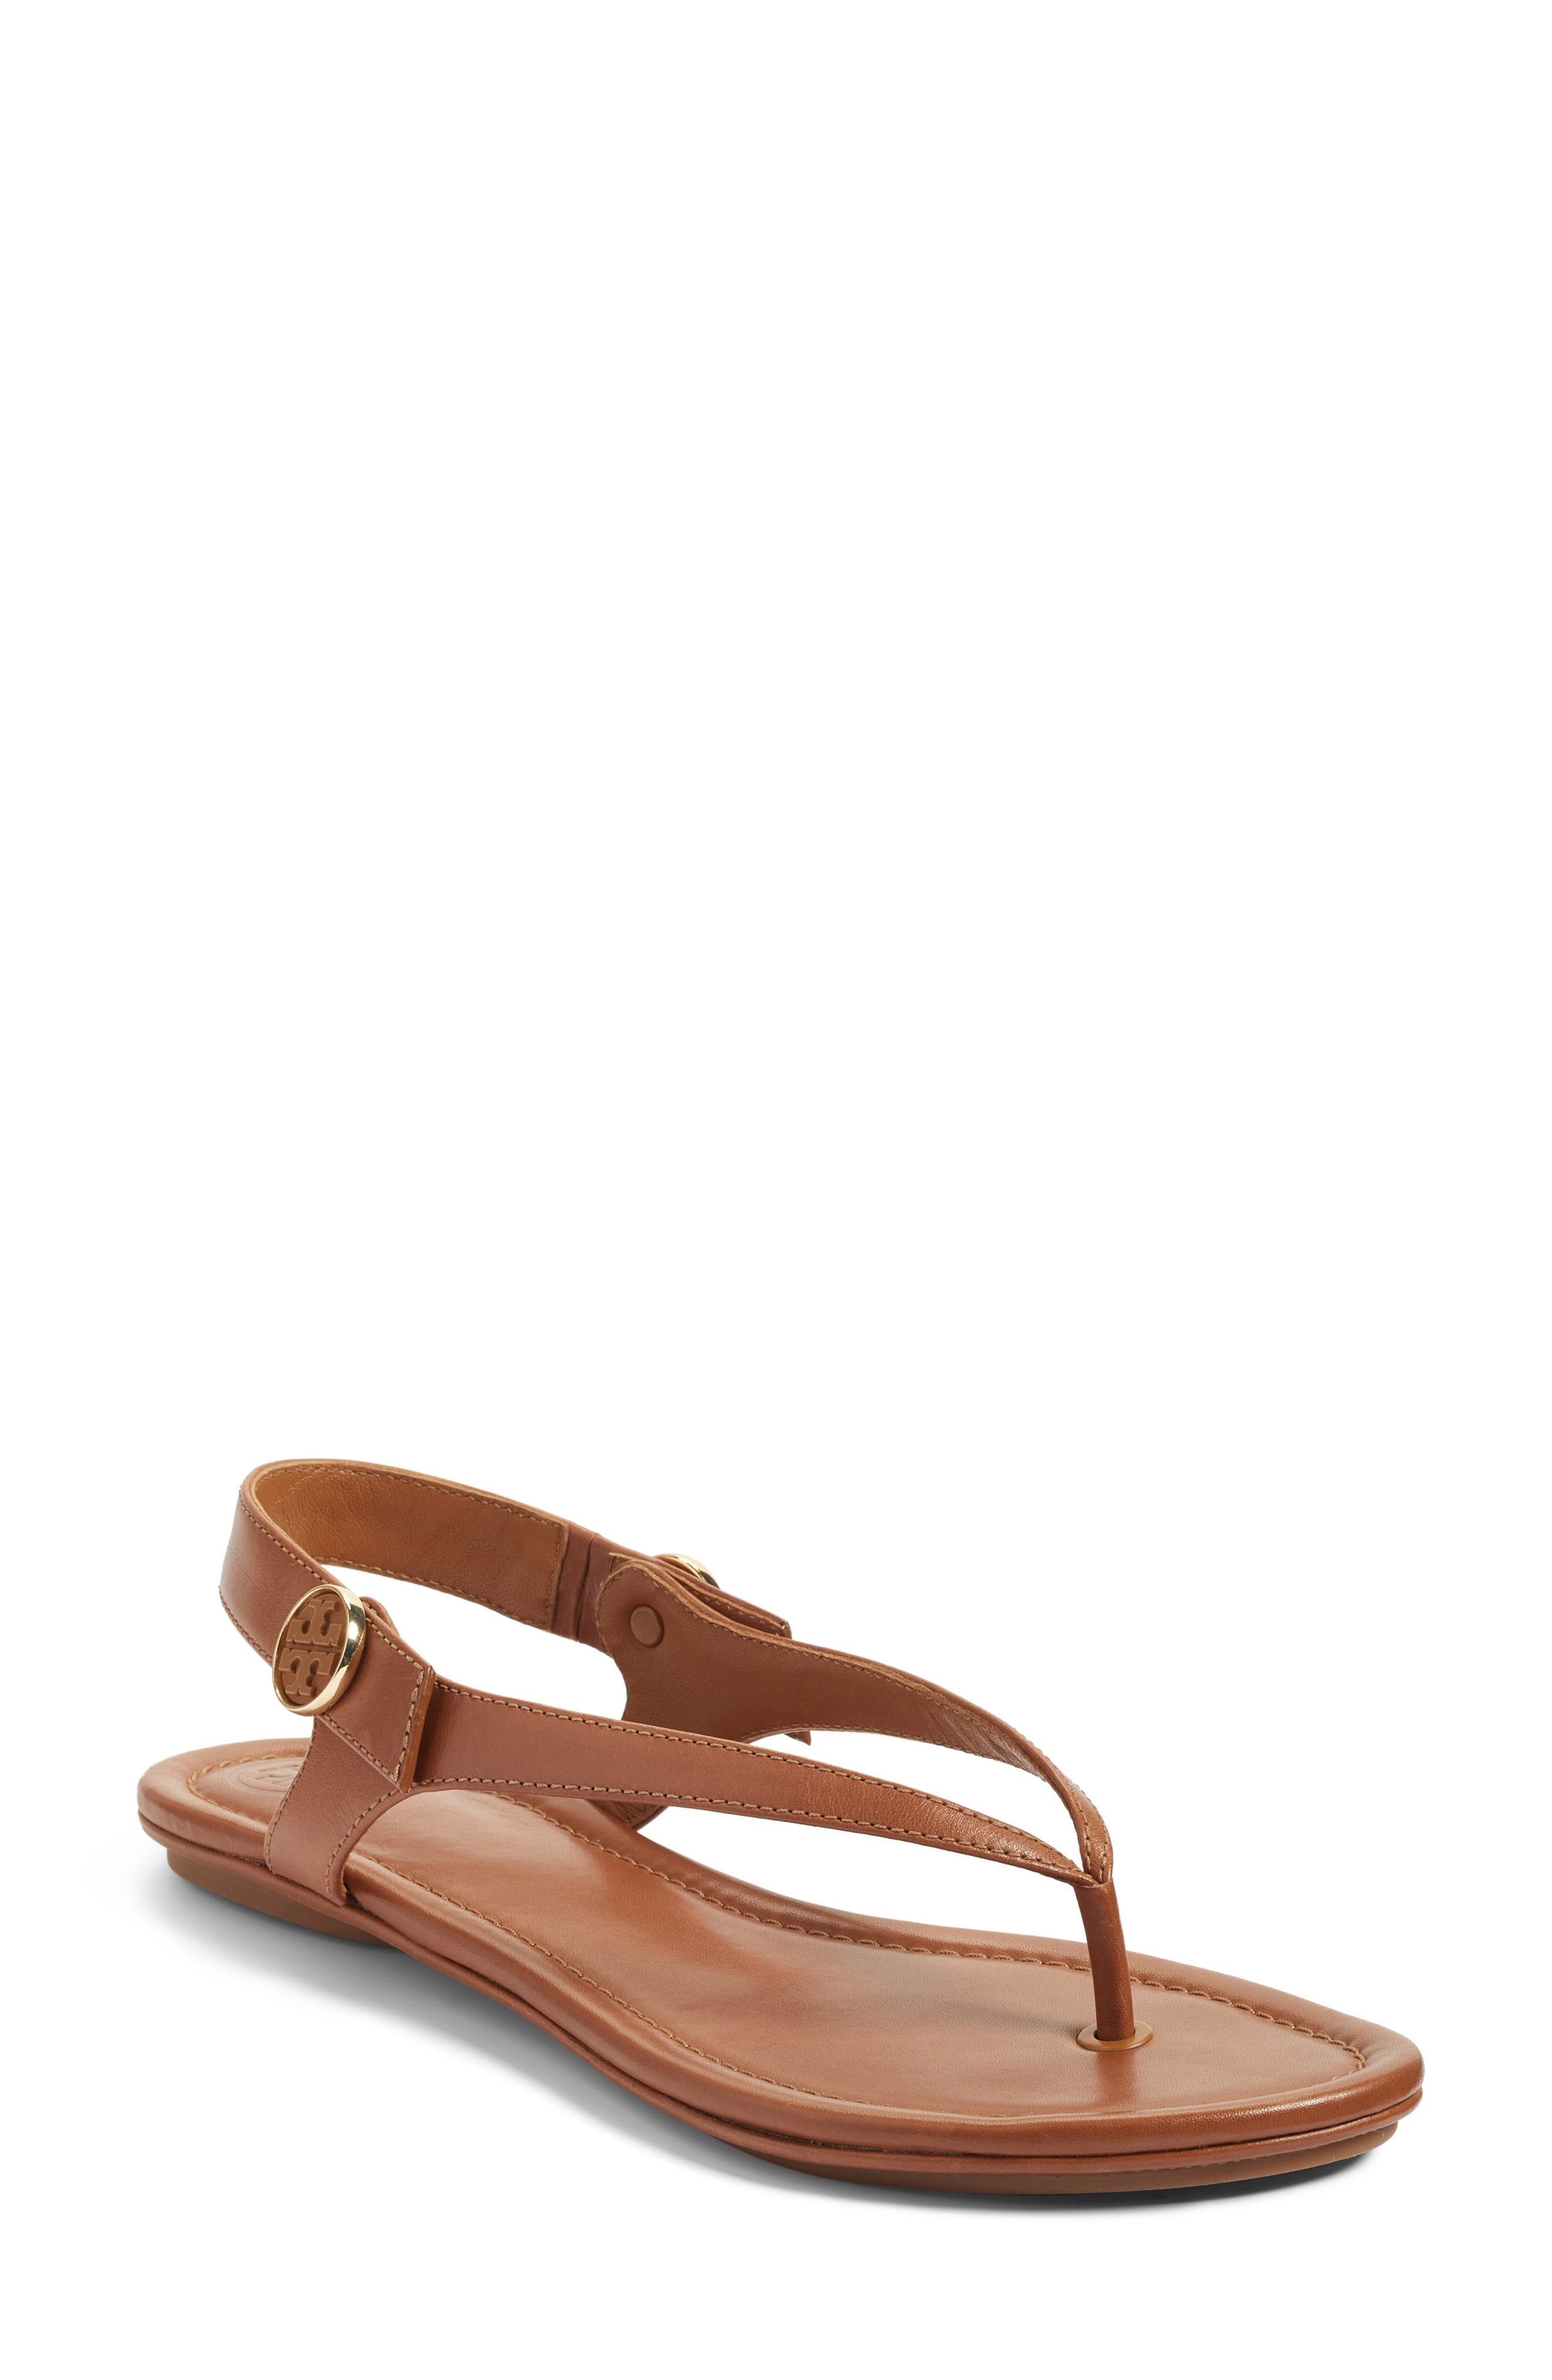 Tory Burch Minnie Travel Thong Sandal (Women)